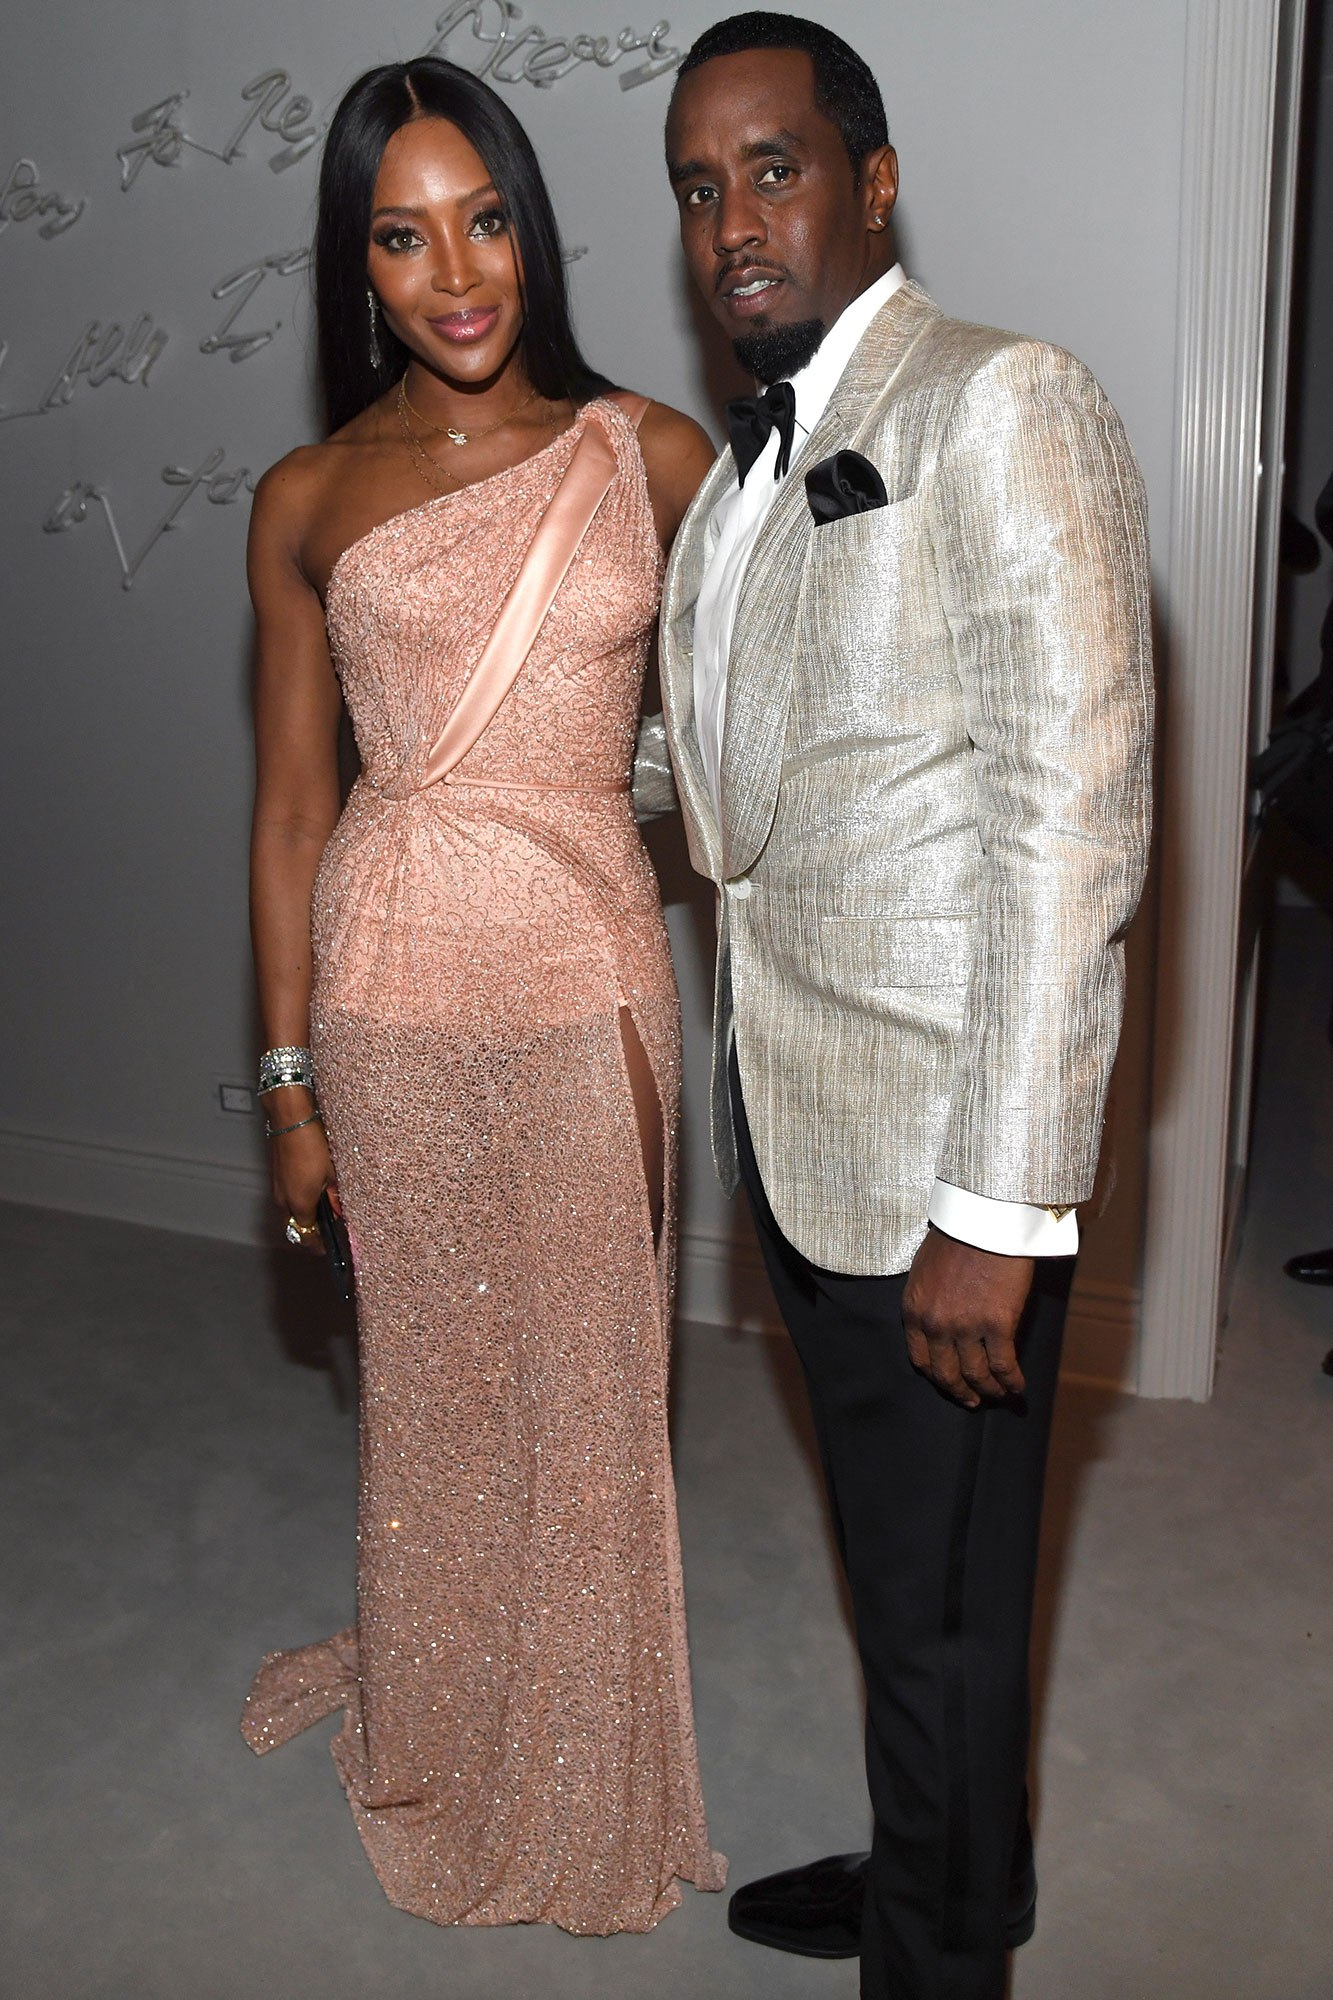 inside-sean-diddy-combs-50th-birthday-party